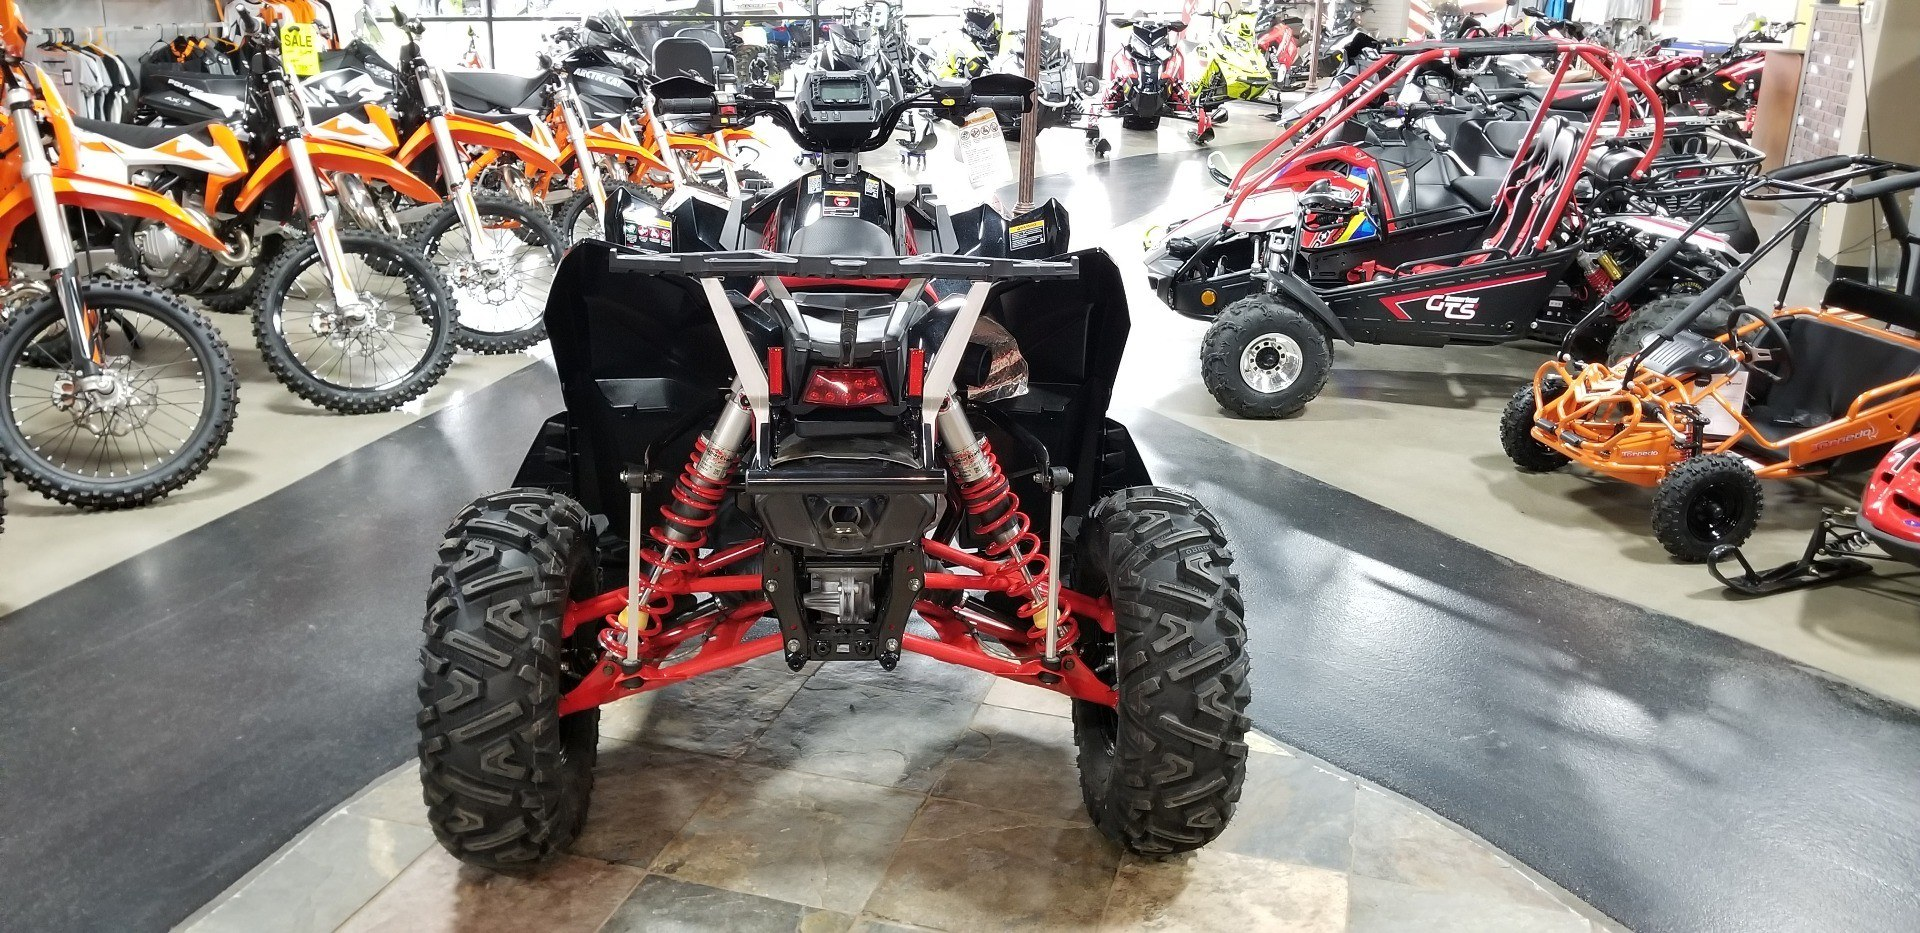 2020 Polaris Scrambler XP 1000 S in Dimondale, Michigan - Photo 5